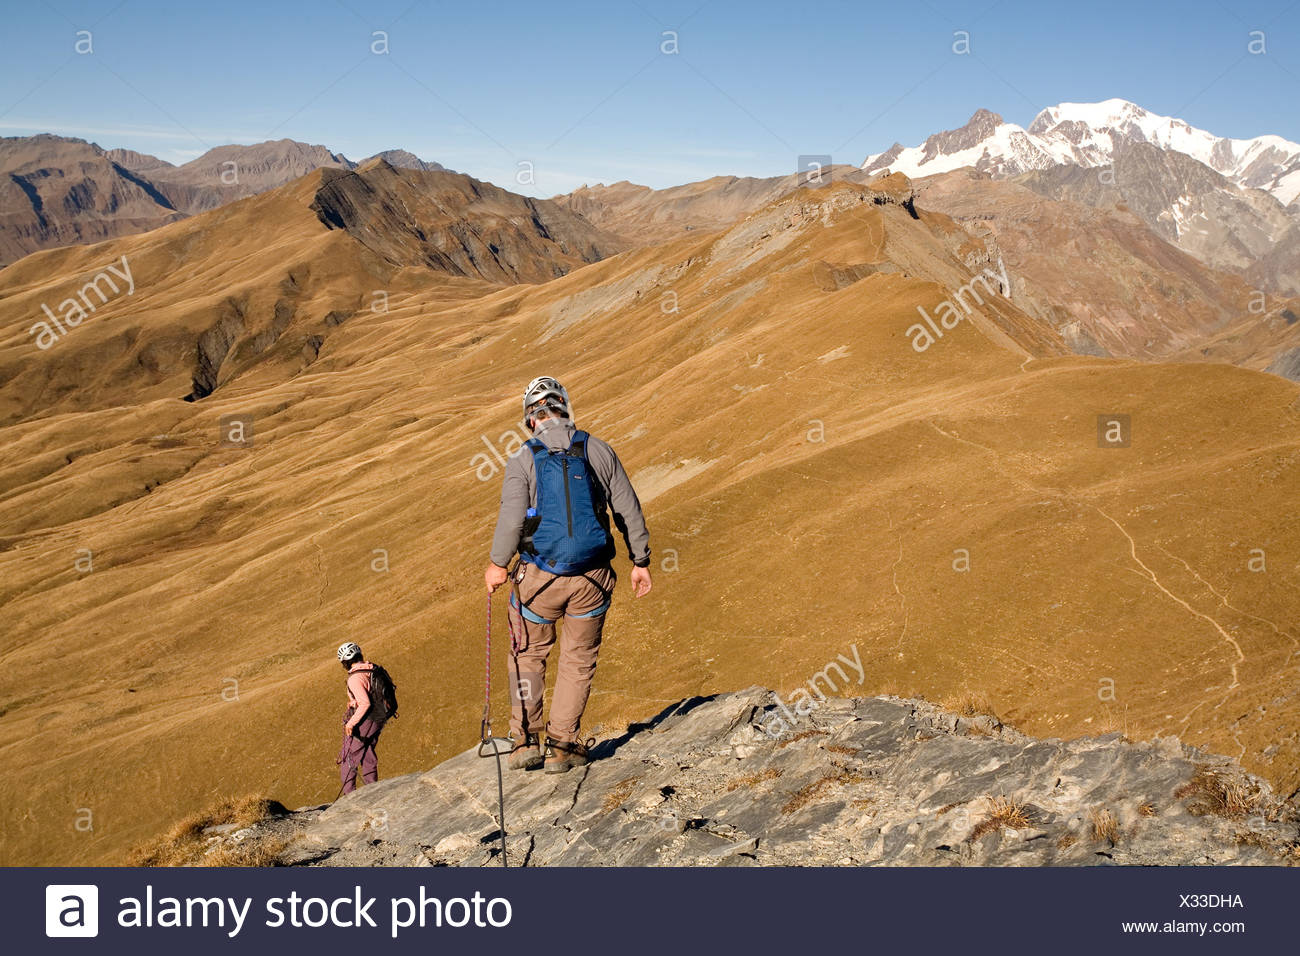 Two people descending a cliff while engaging in the sport of Via Ferrata in the French Alps. - Stock Image